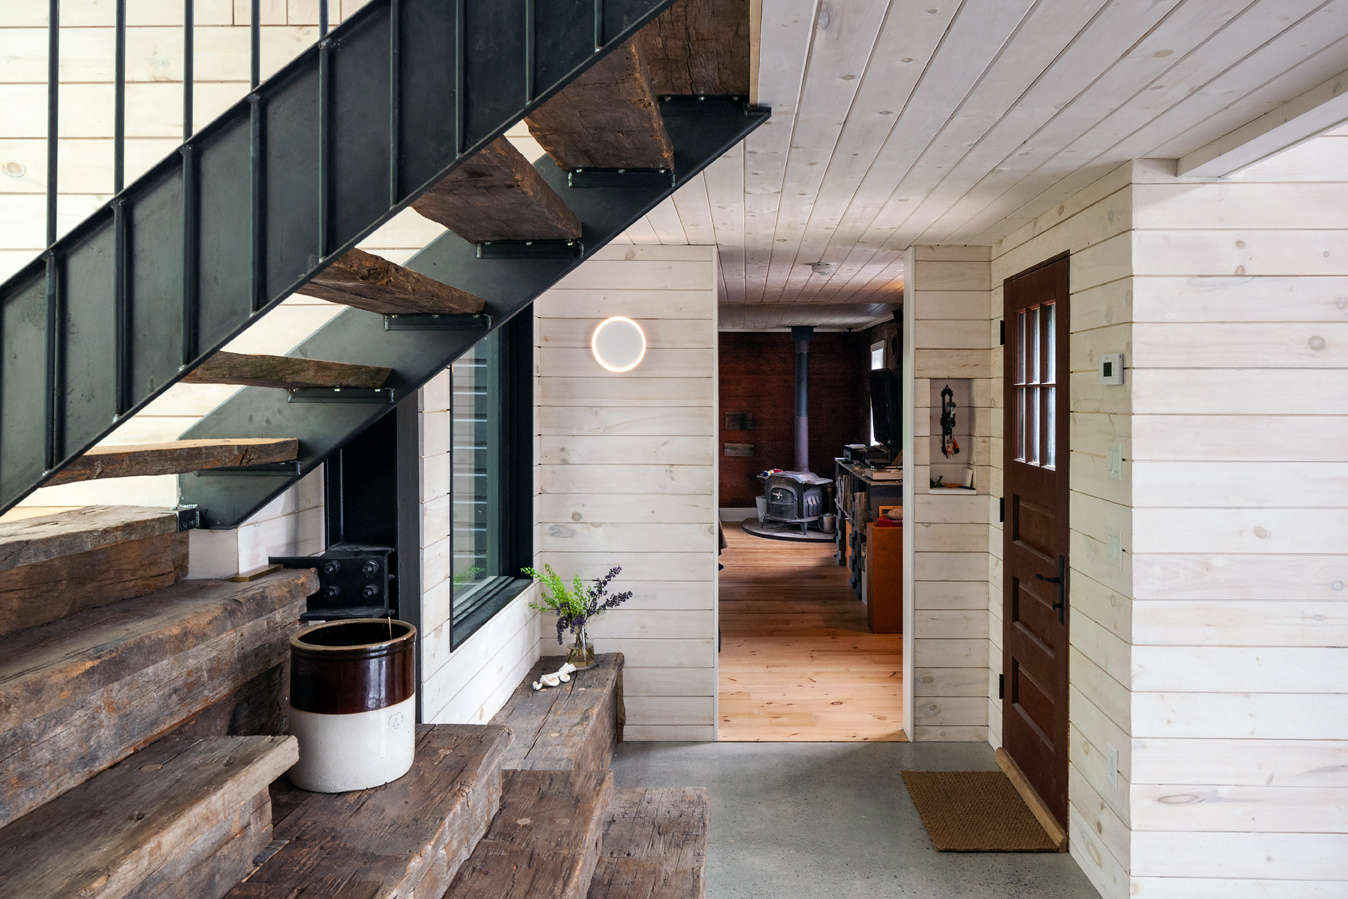 The entrance to the home. The stairs are made from the same reclaimed wood as the ceiling beams.